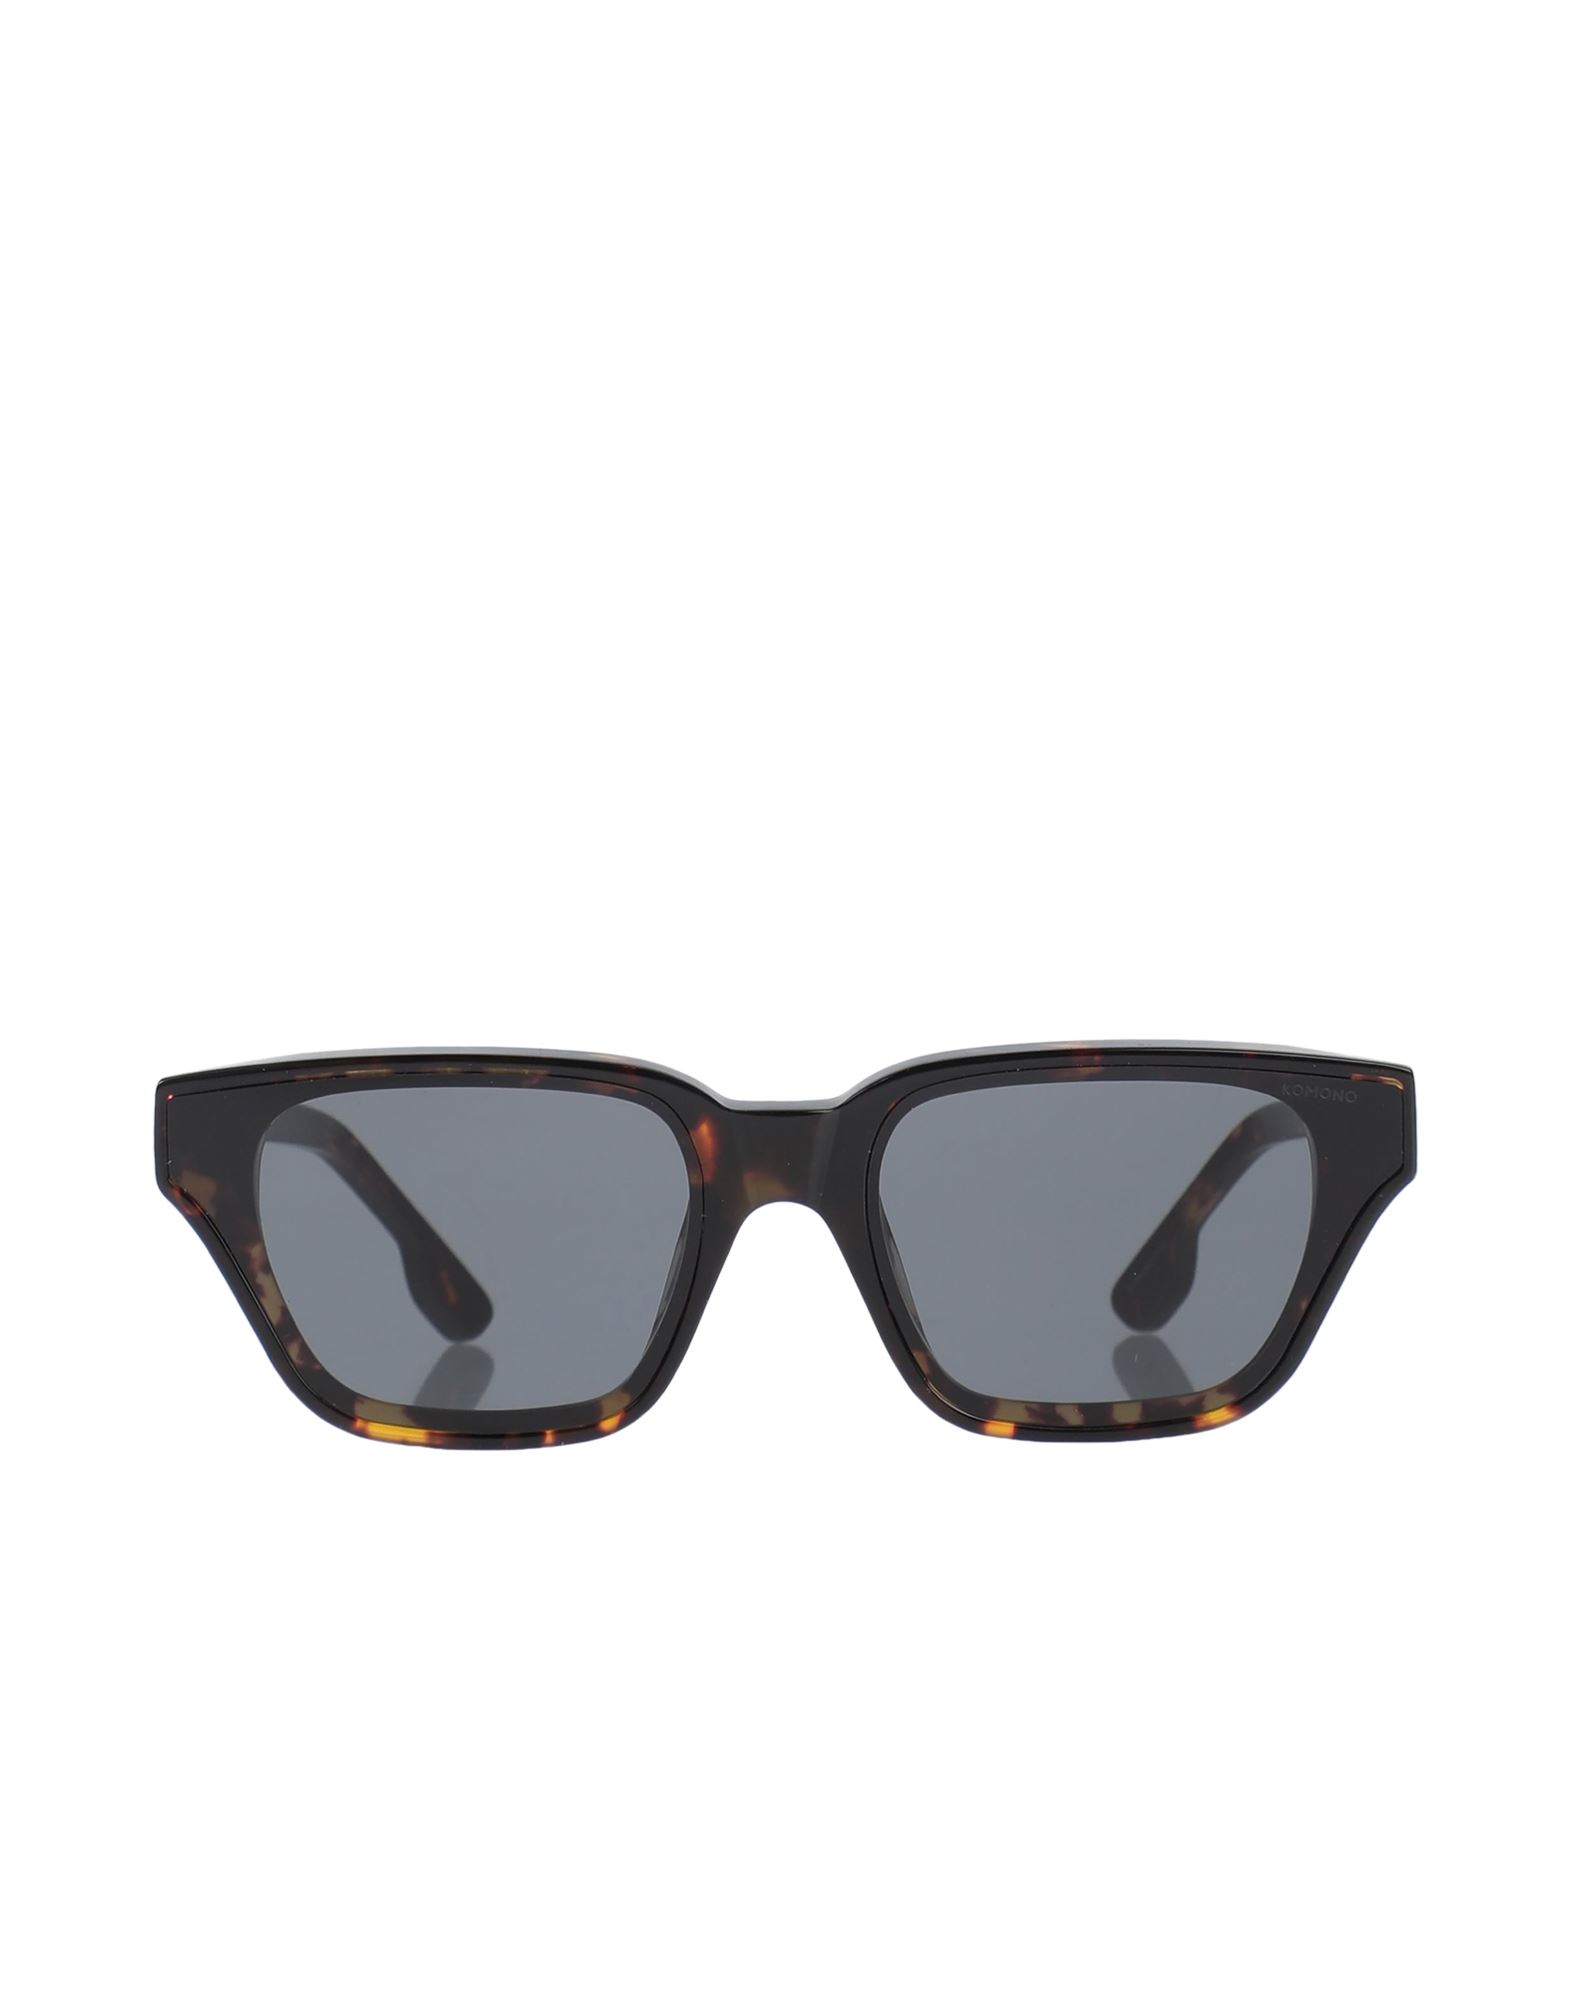 KOMONO Sunglasses - Item 46740881